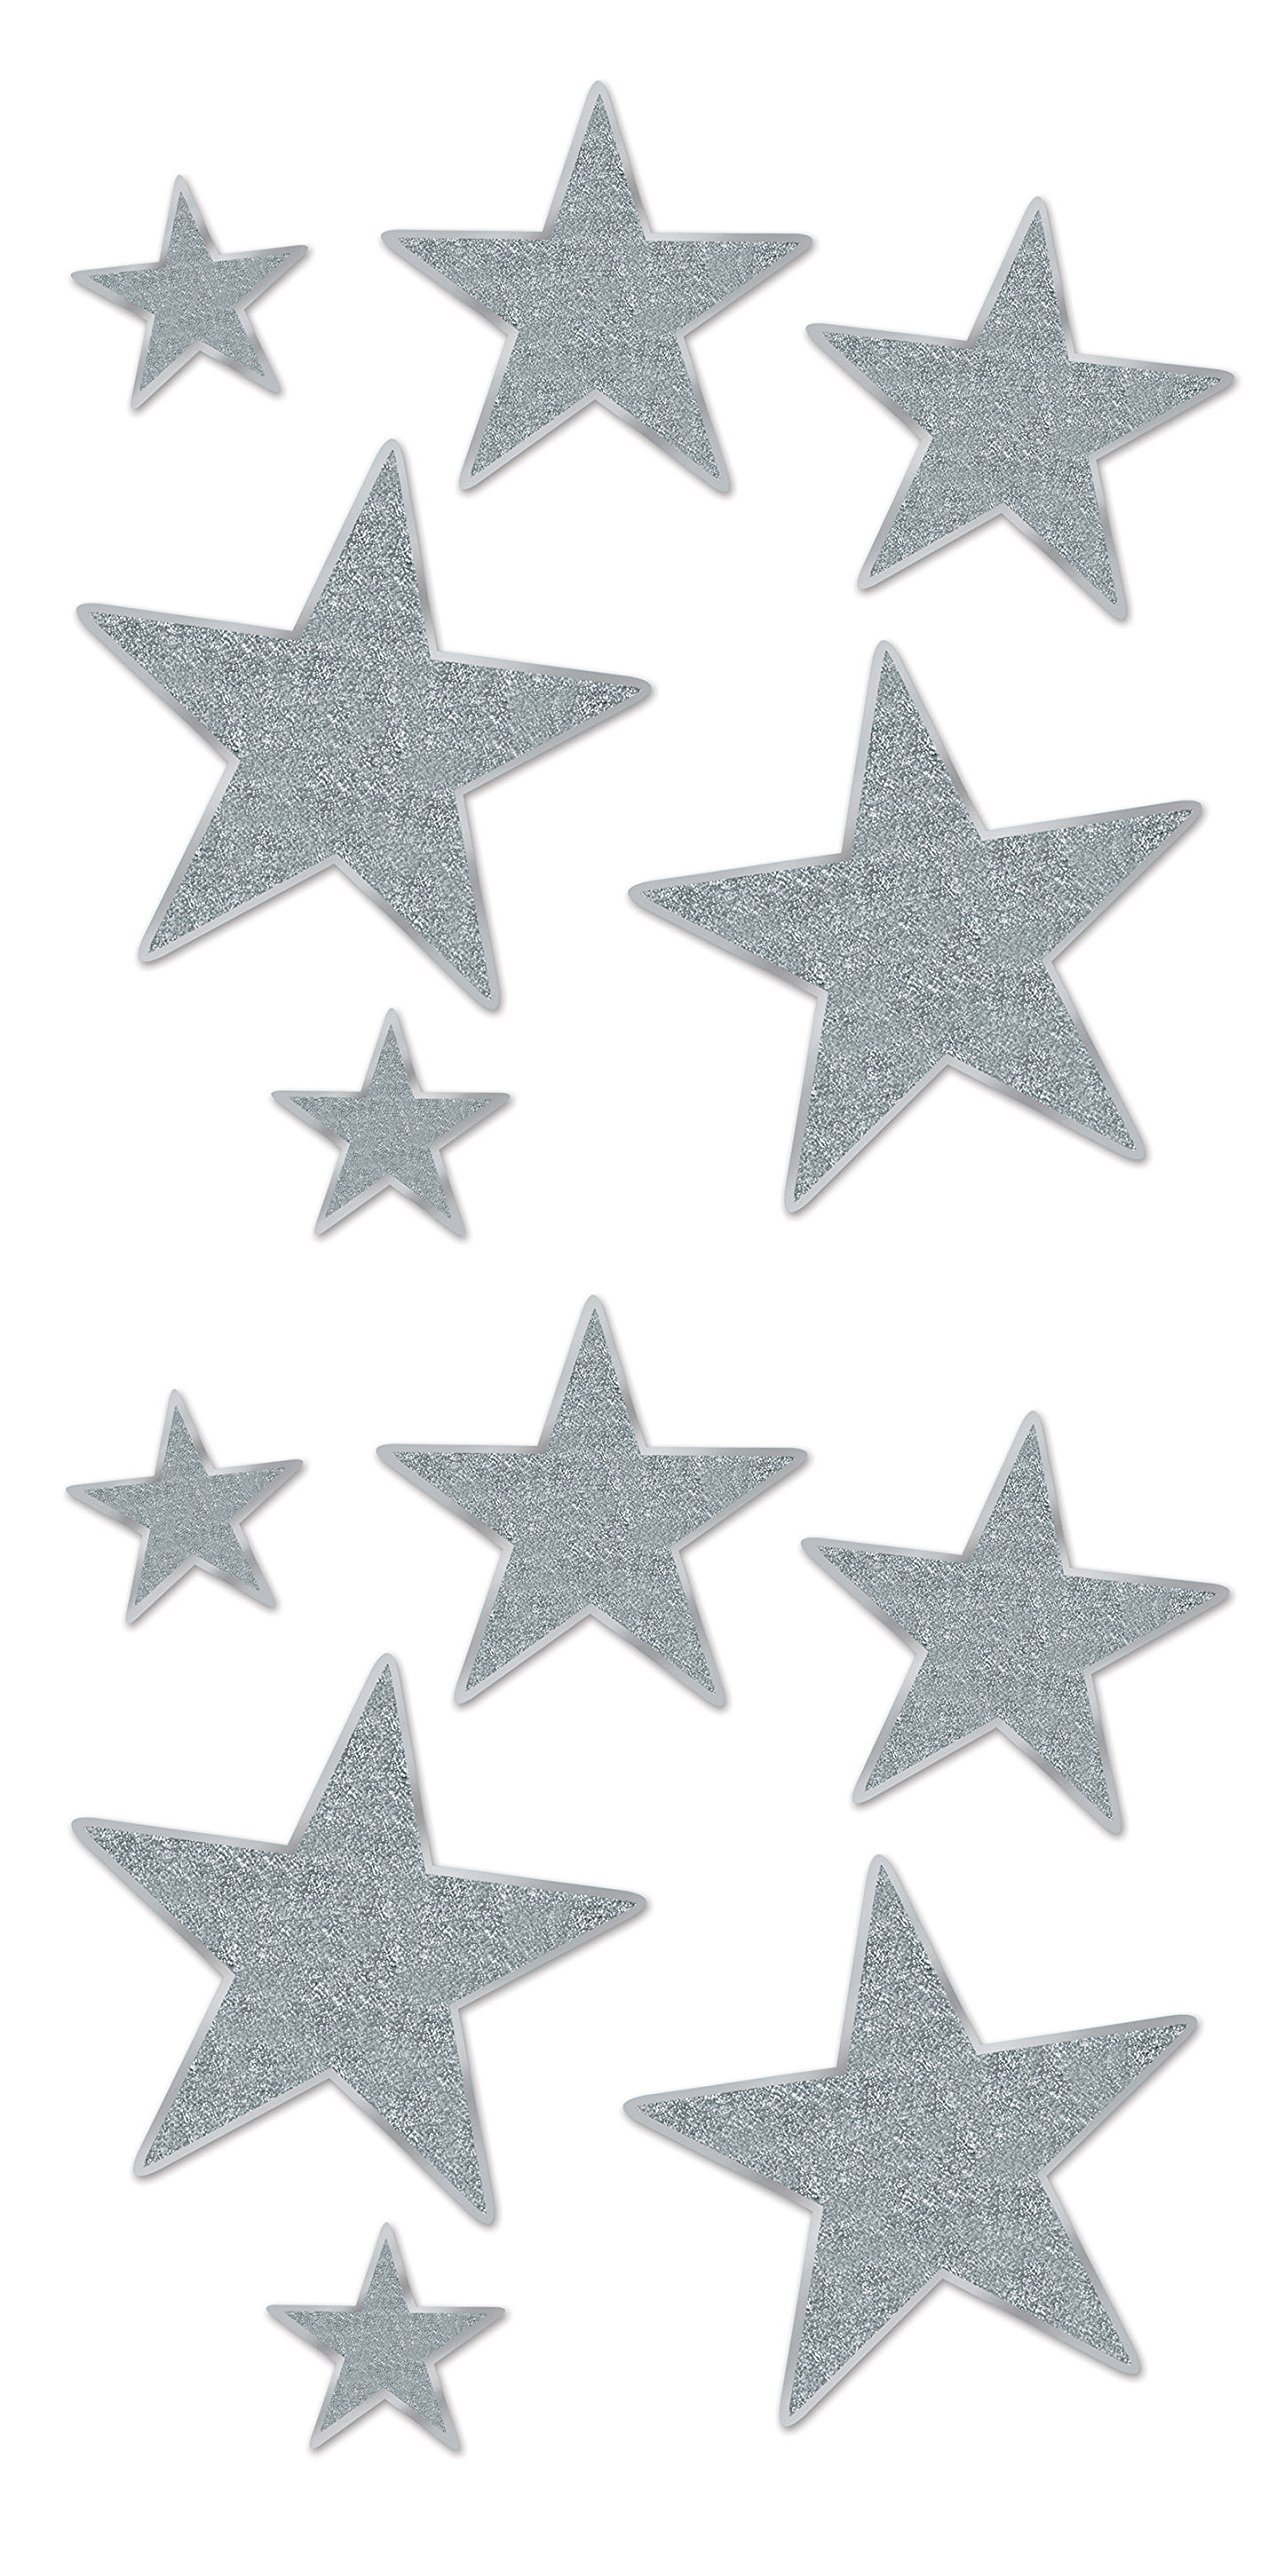 Beistle 57857-S 12 Pieces Assorted Glittered Foil Star Cutouts, Silver by Beistle